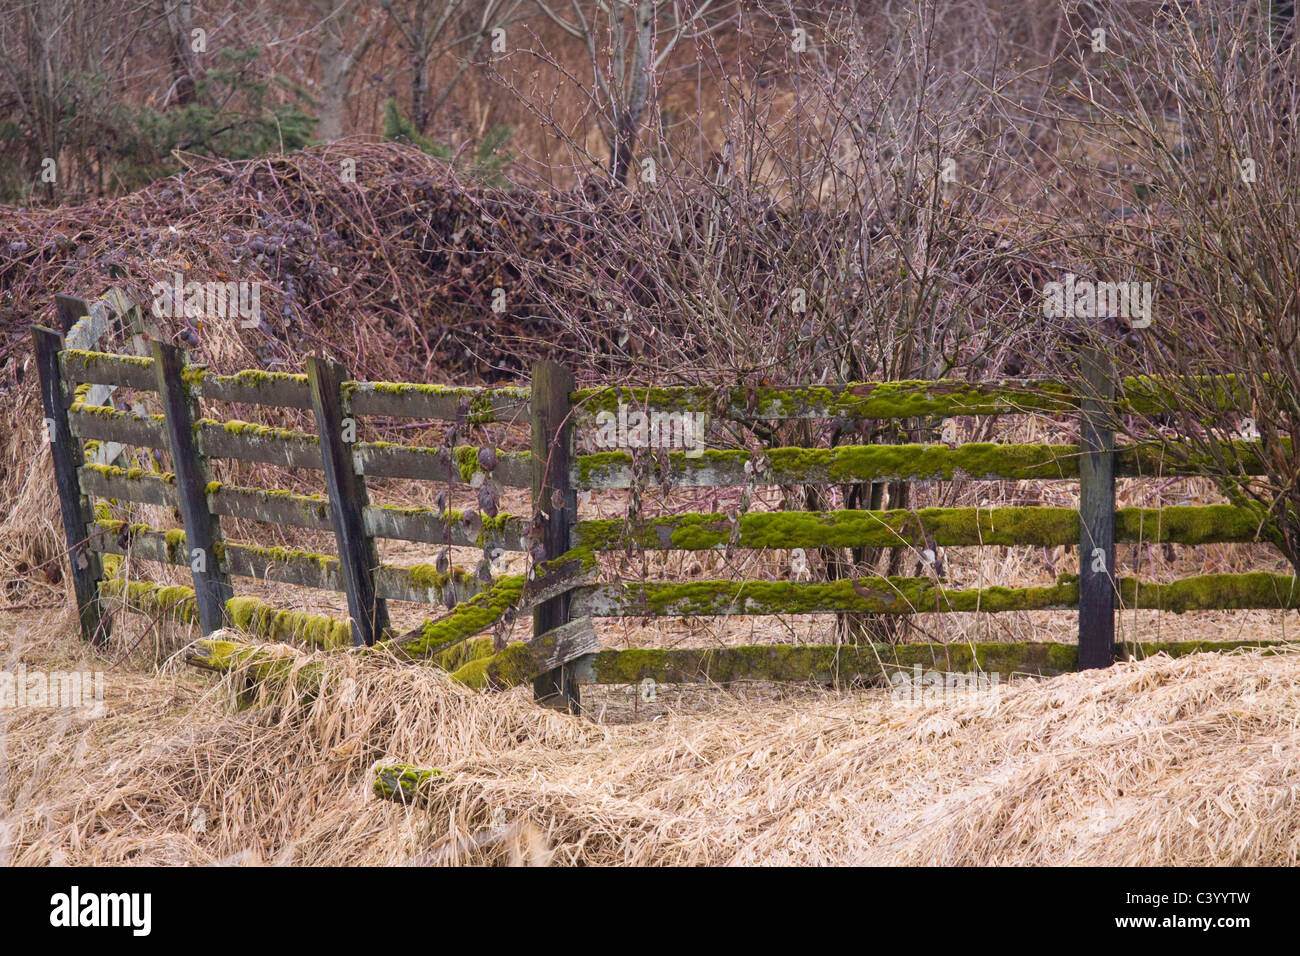 Mossy fence entangled in brambles, Colony Farm Regional Park, Port Coquitlam, BC, Canada - Stock Image